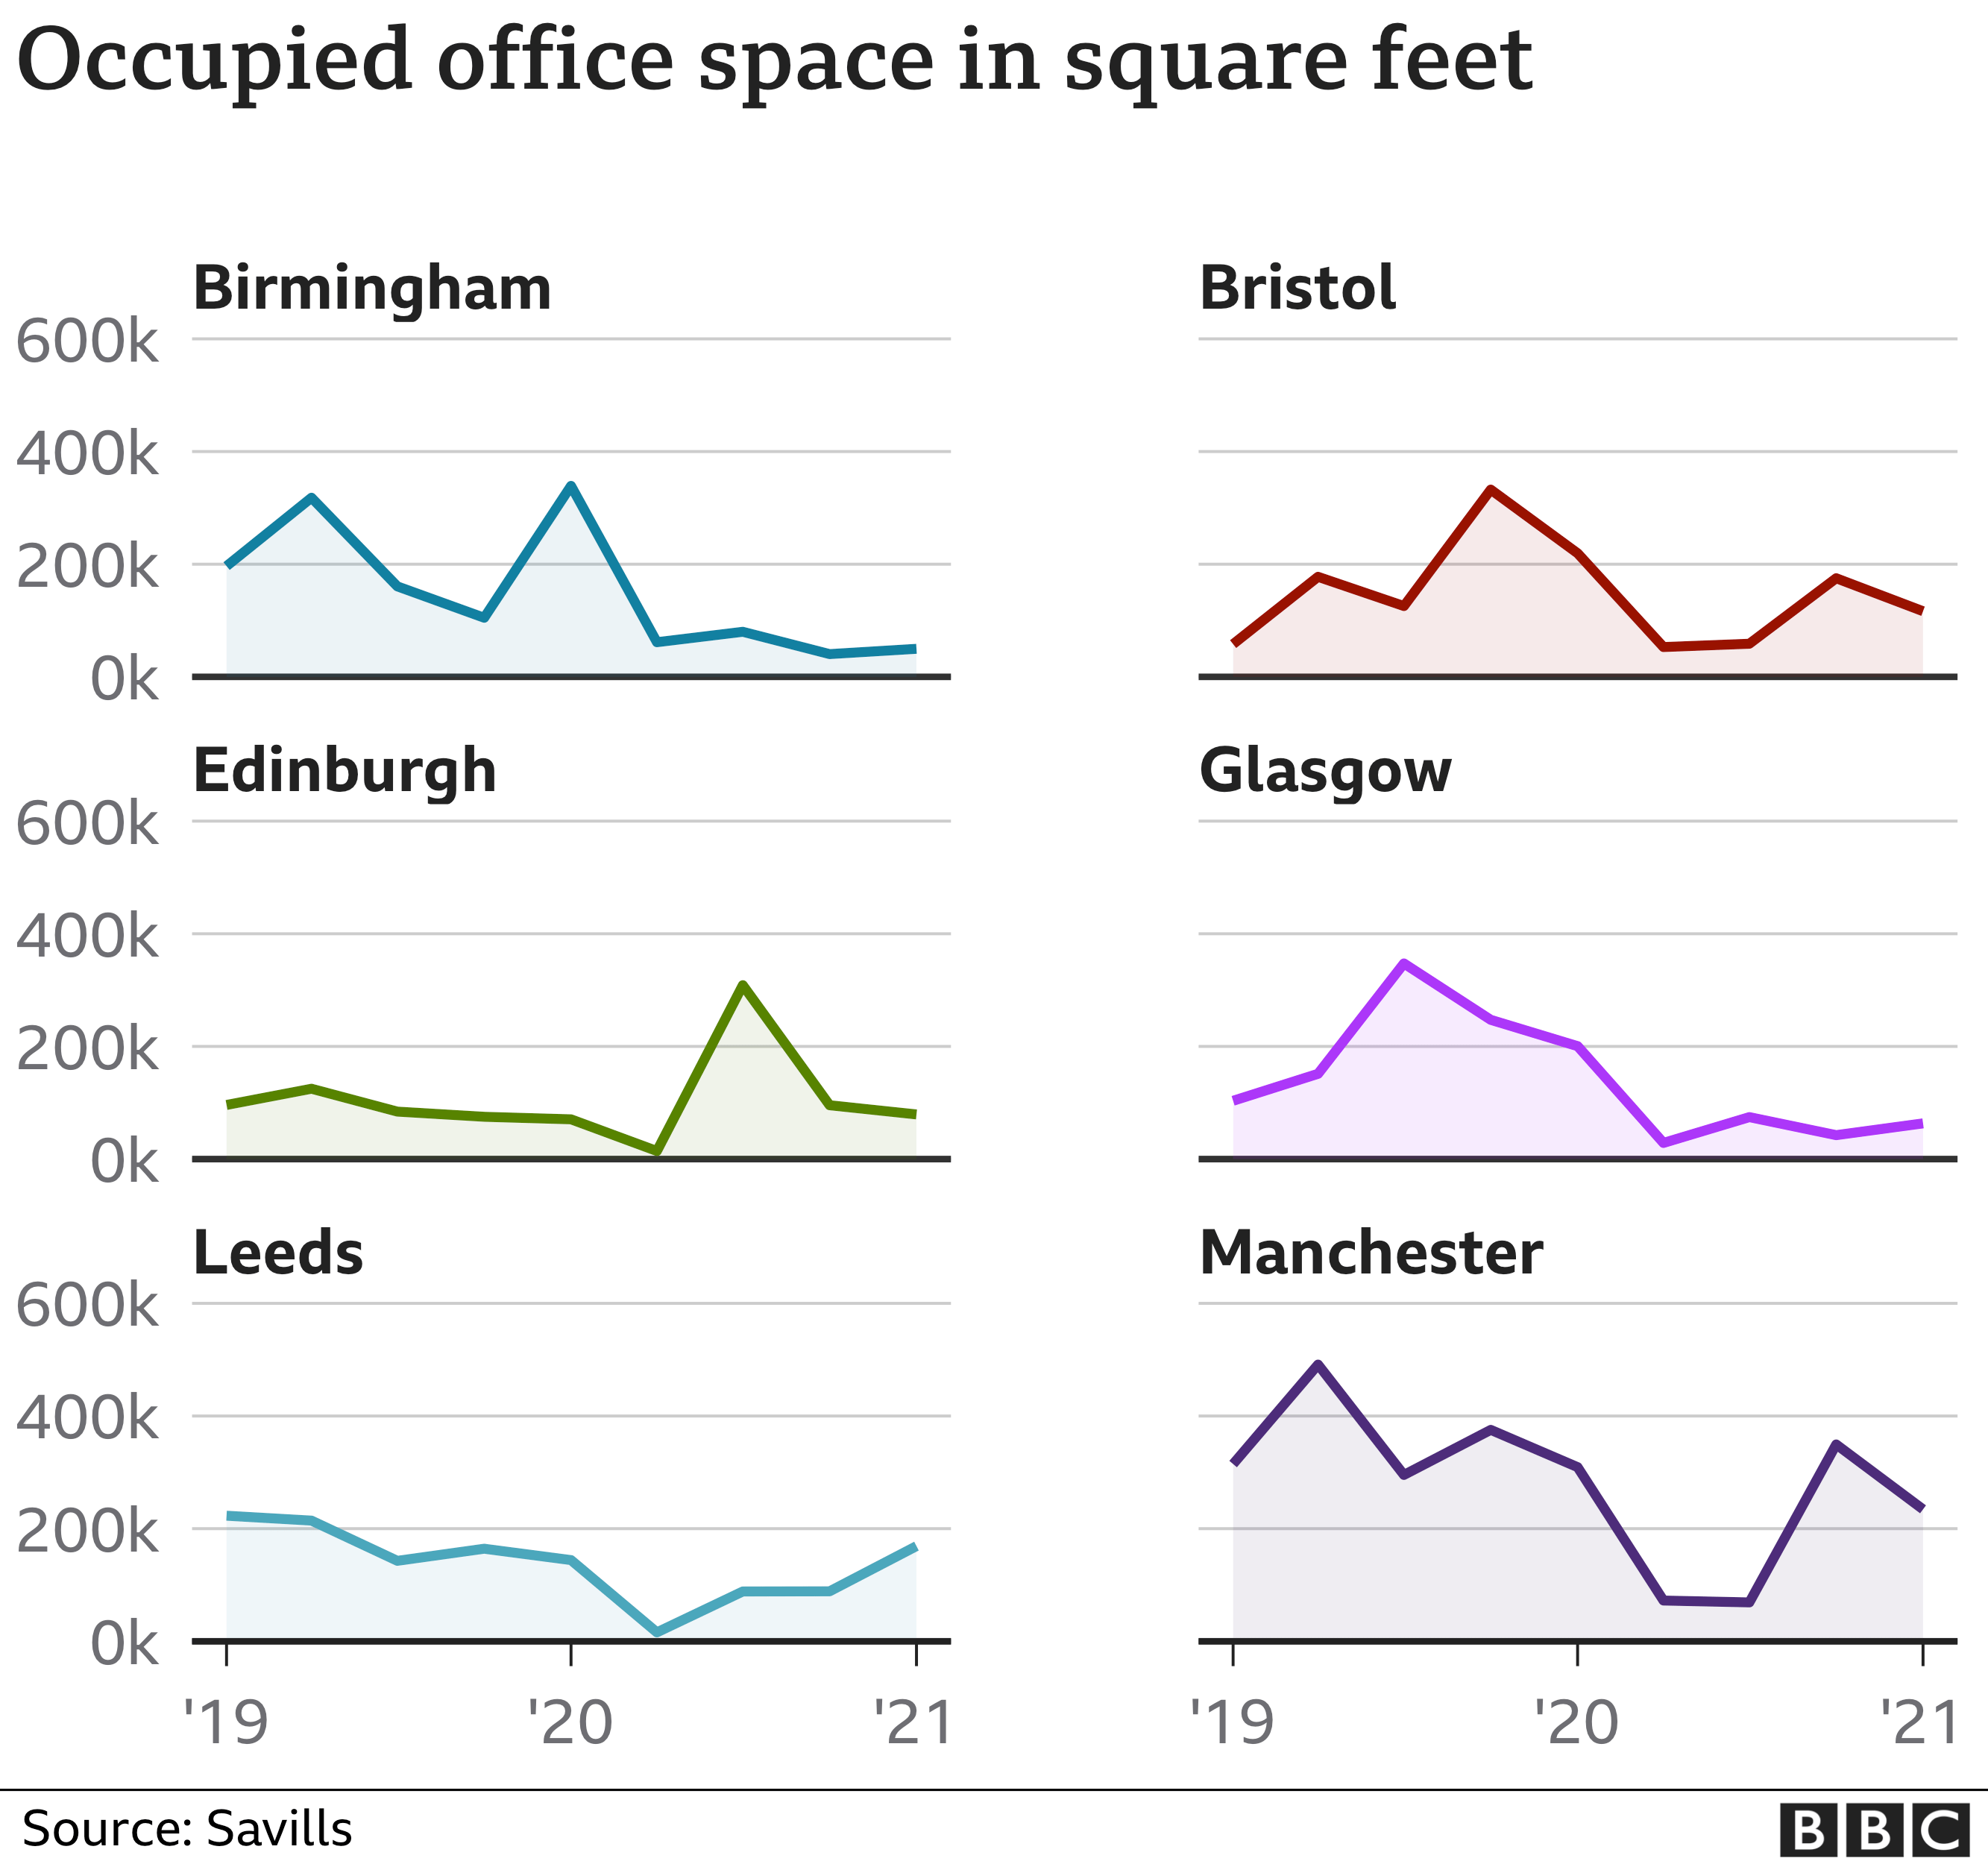 Occupied office space chart